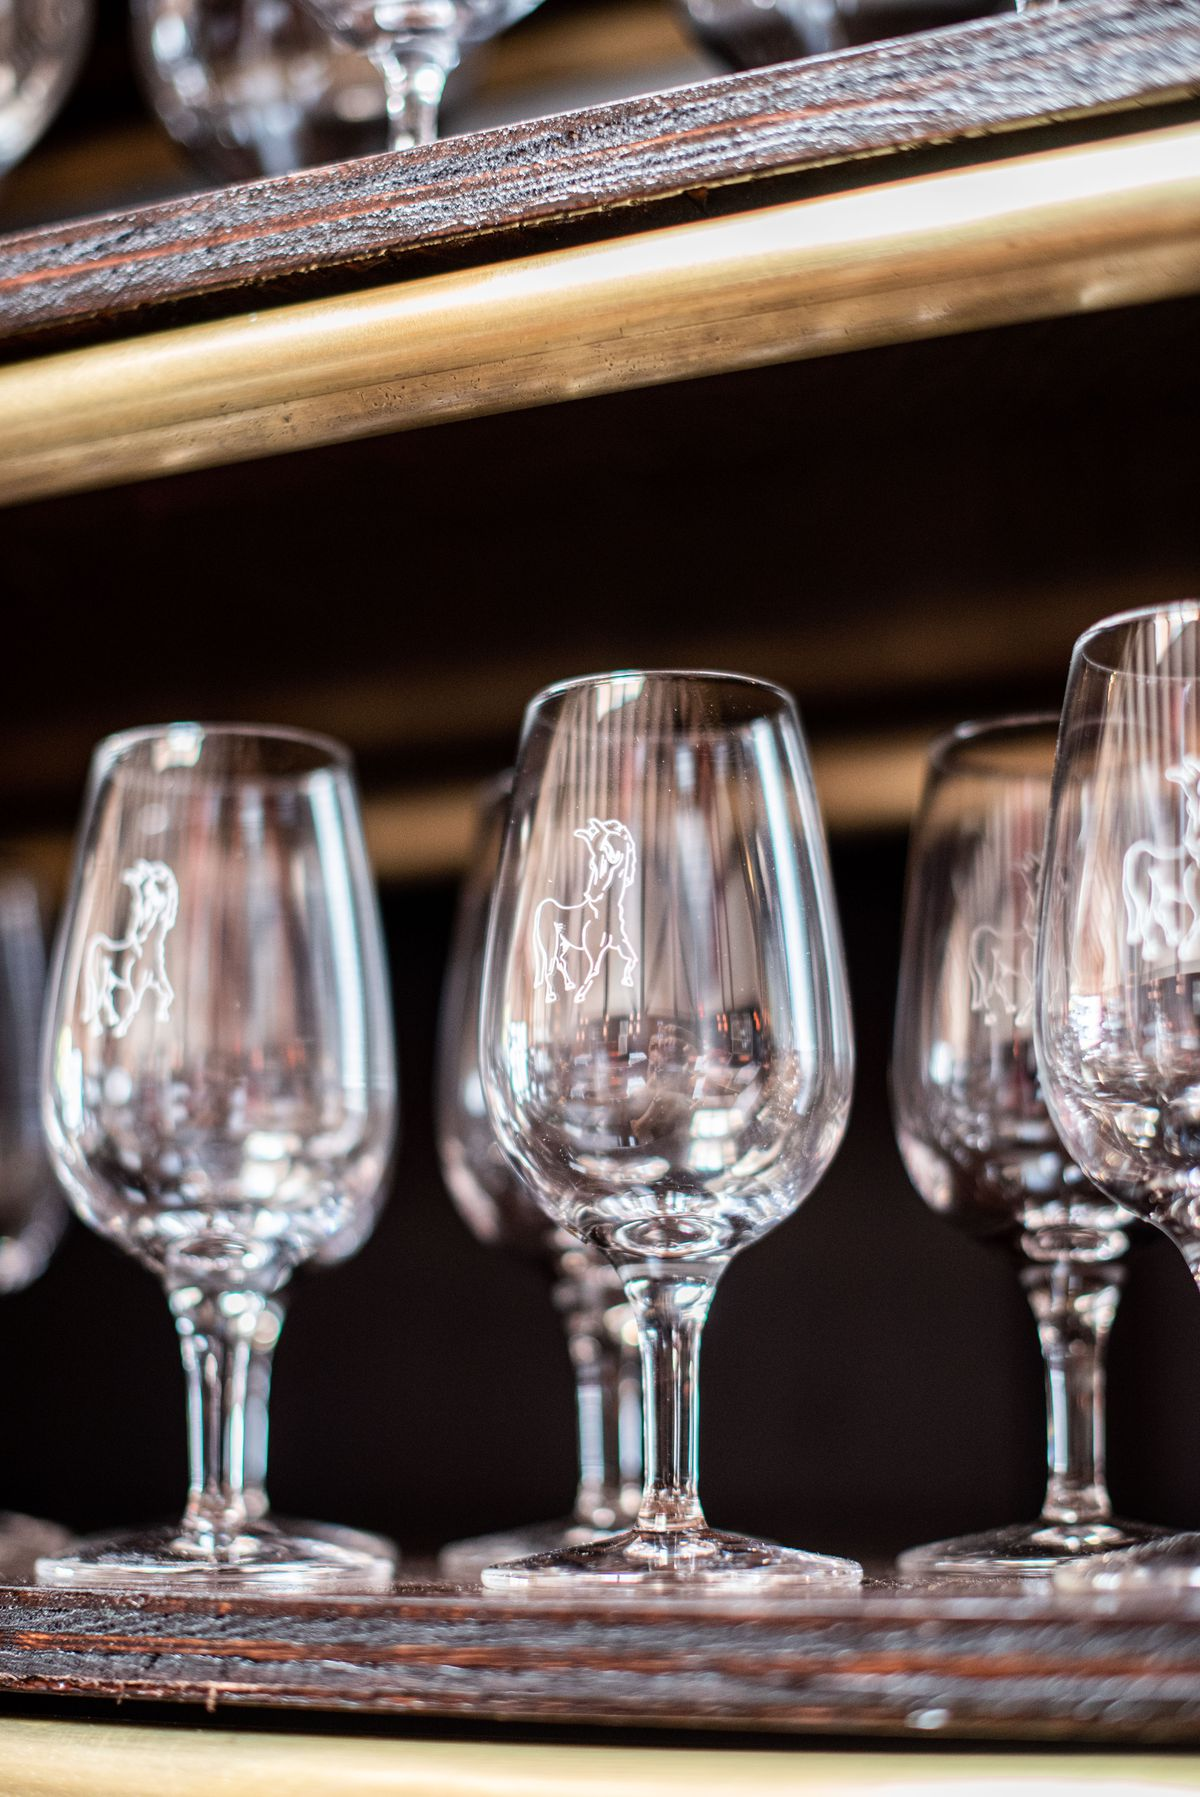 Wine glasses set for service with a notched horse engraved on the outside.